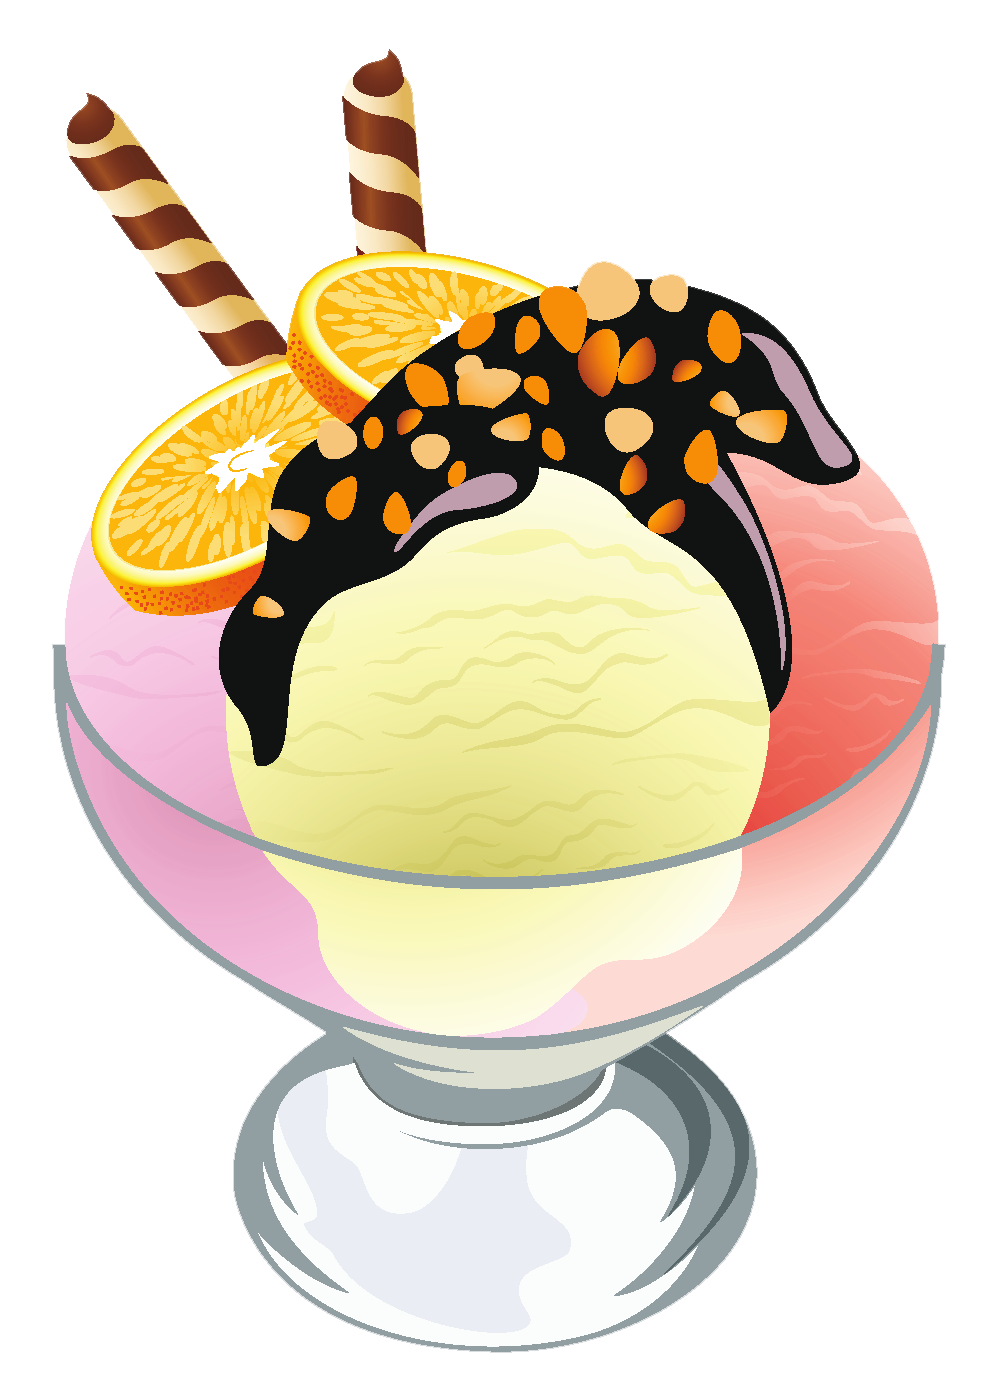 Ice cream sundae transparent picture 5 cliparts